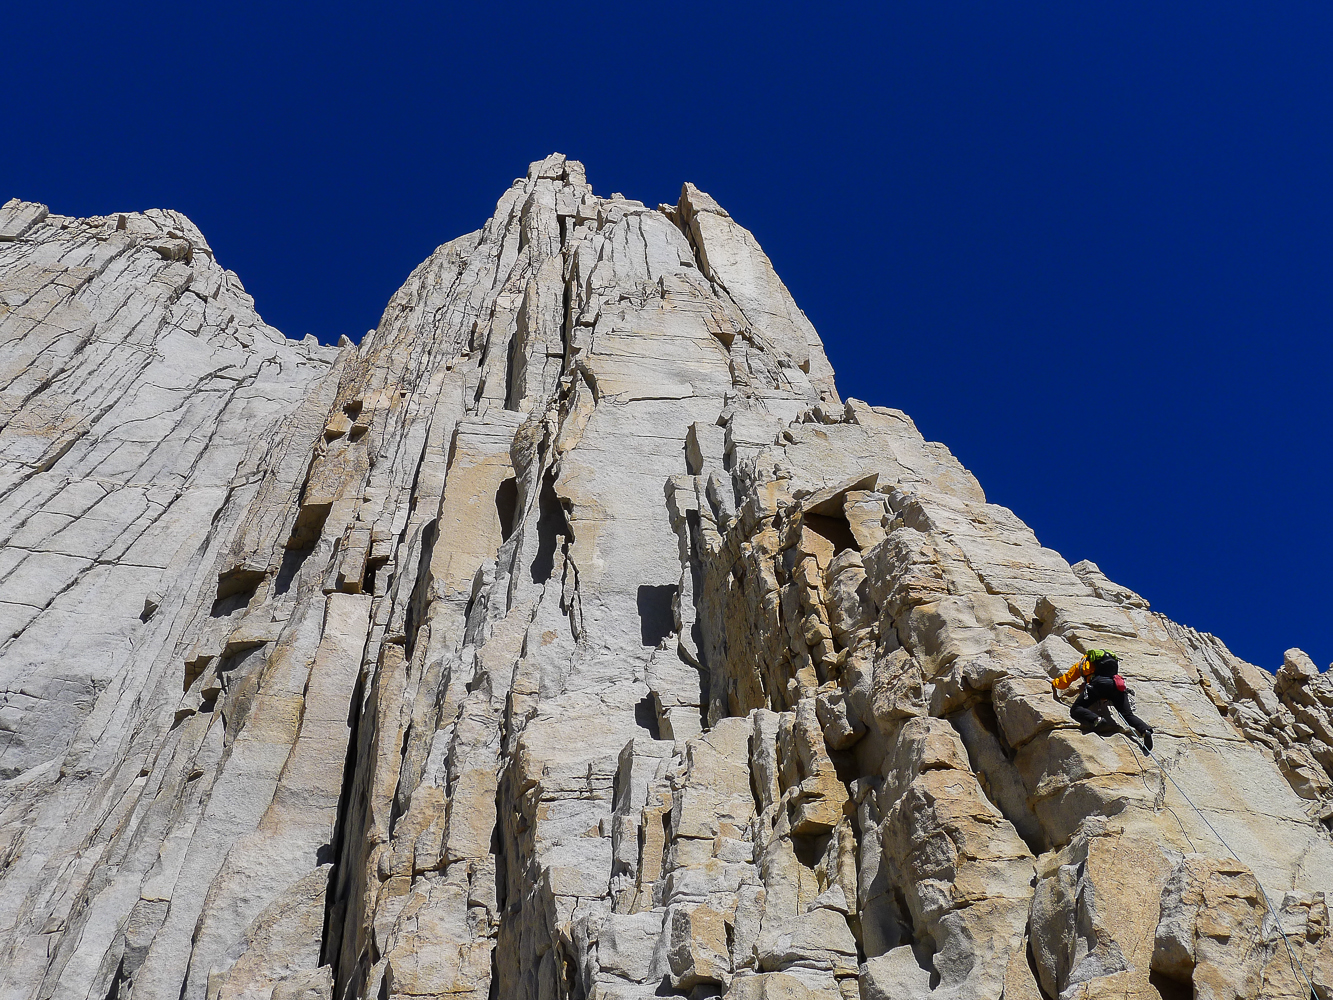 Peter Croft in the midst of guiding the Fishhook Arête in a day,